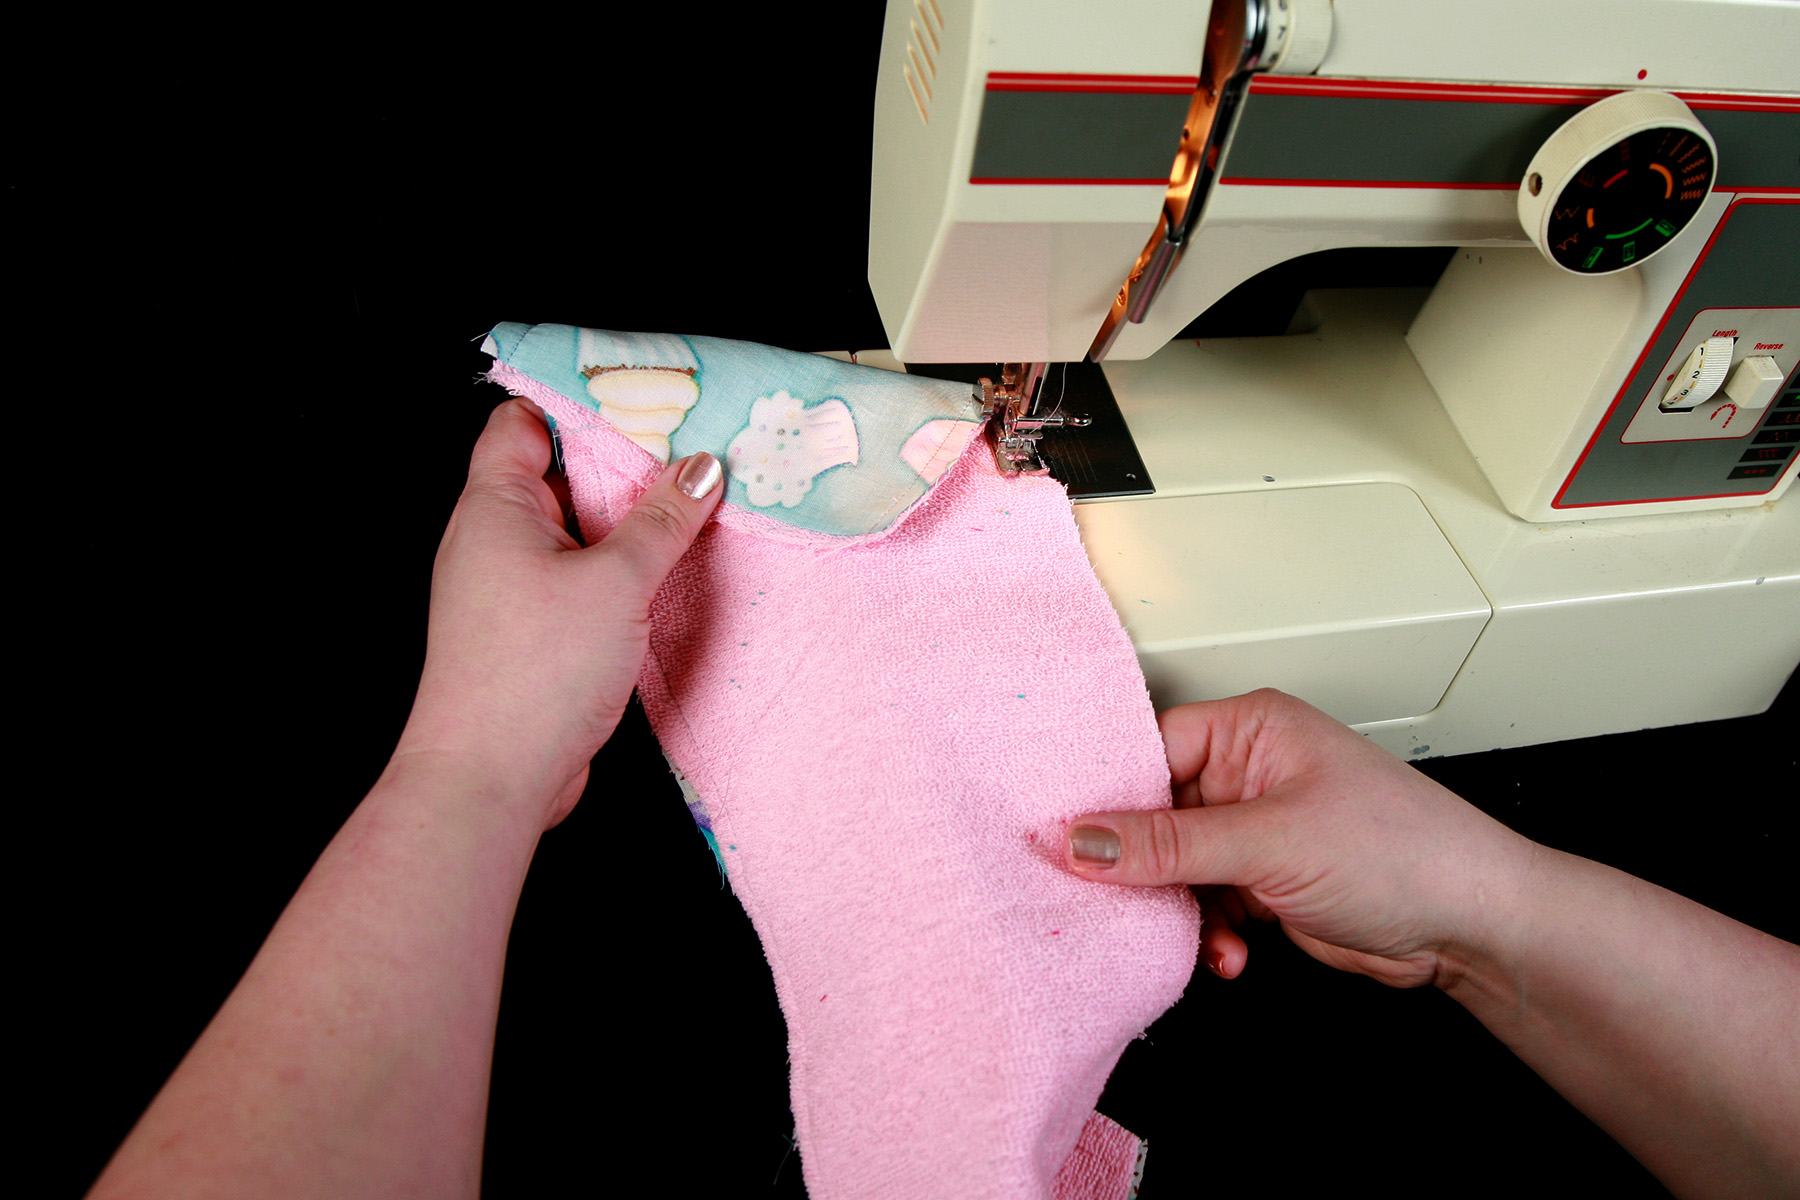 A pair of hands uses a sewing machine to sew a strip of pink terrycloth